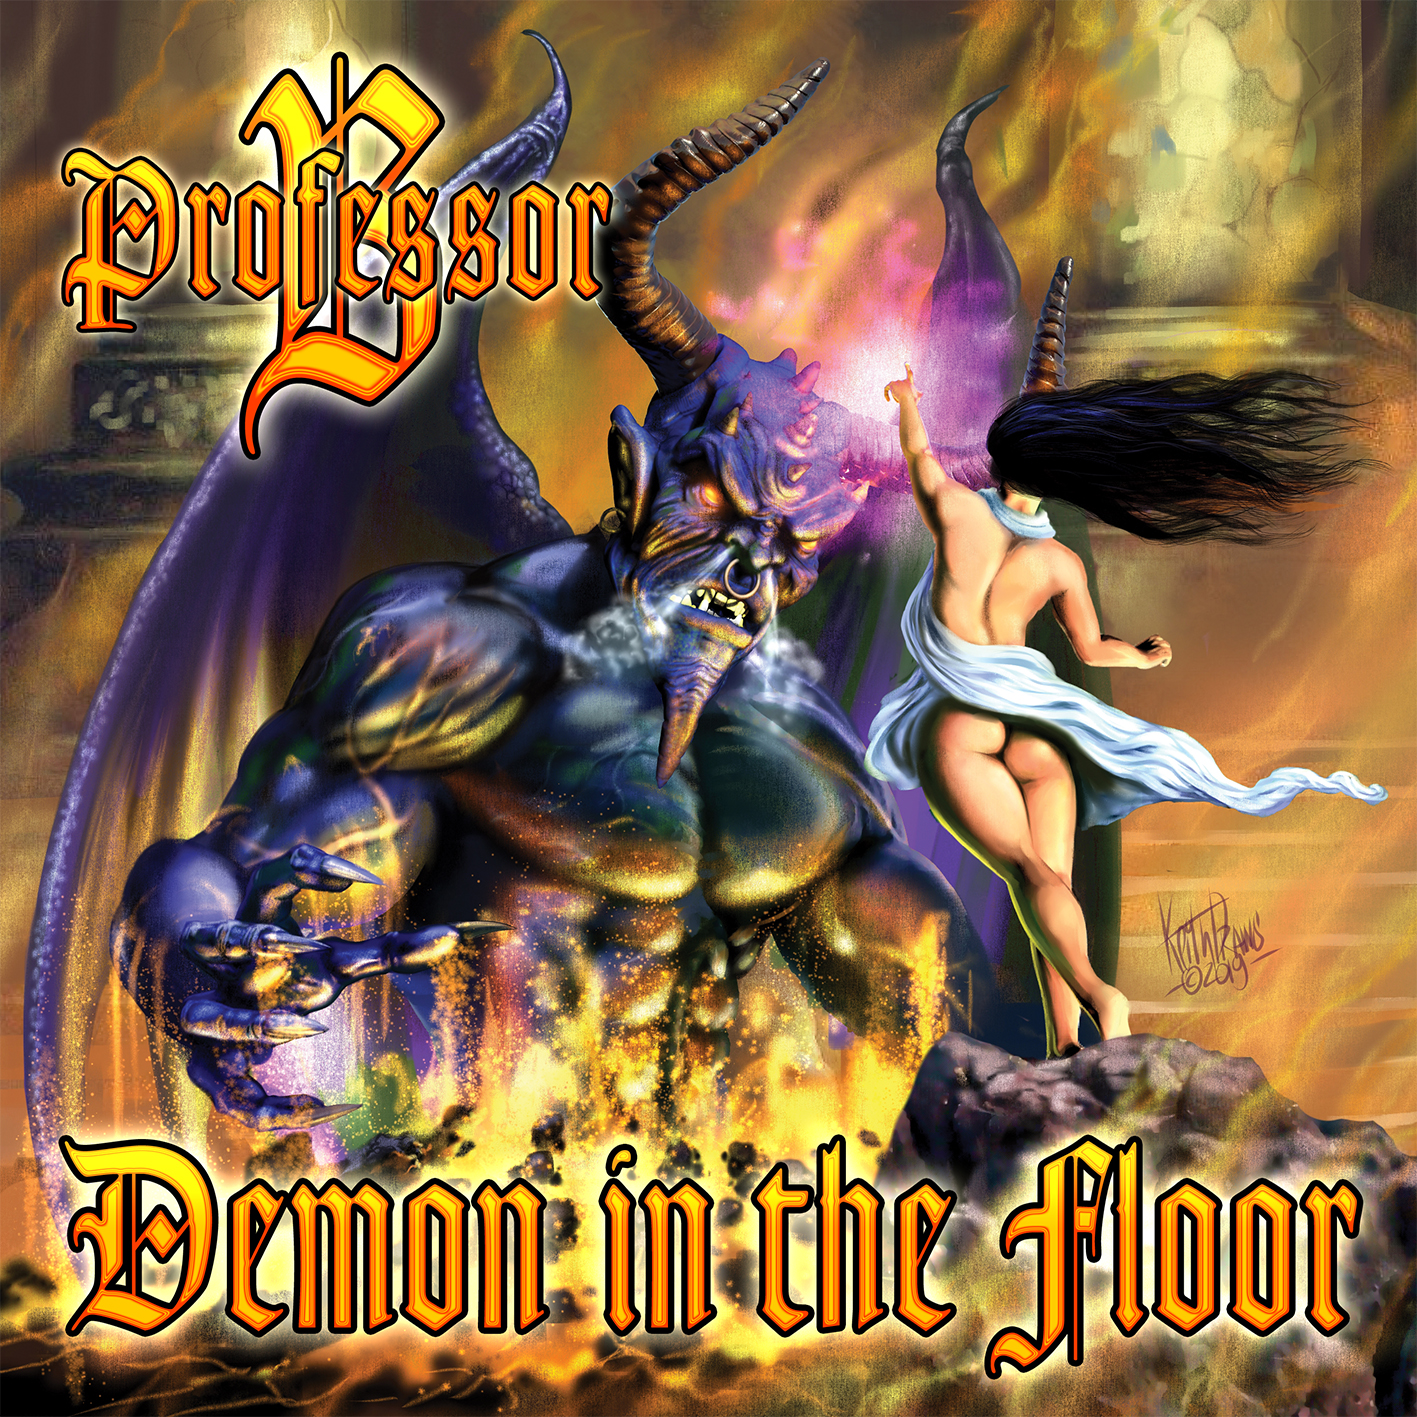 Demon in the Floor - an album by Professor B